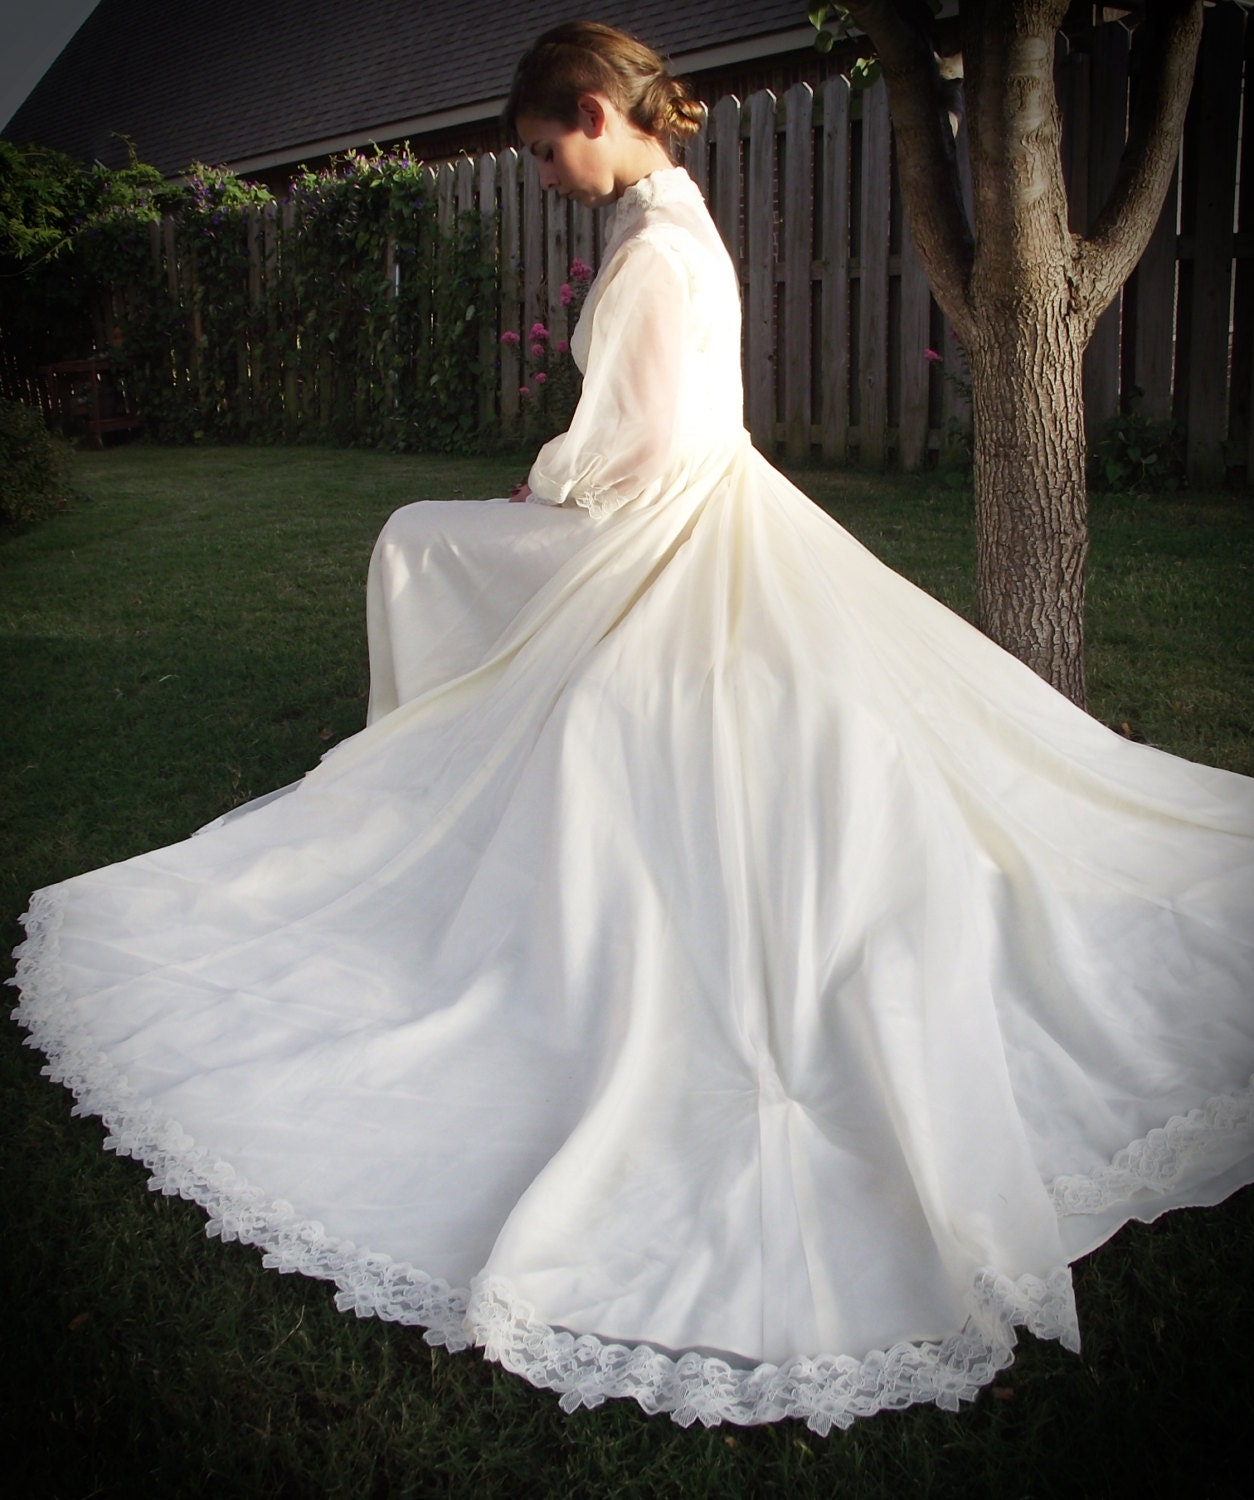 Vintage Wedding Dress Gown Ivory Lace Long Sleeve